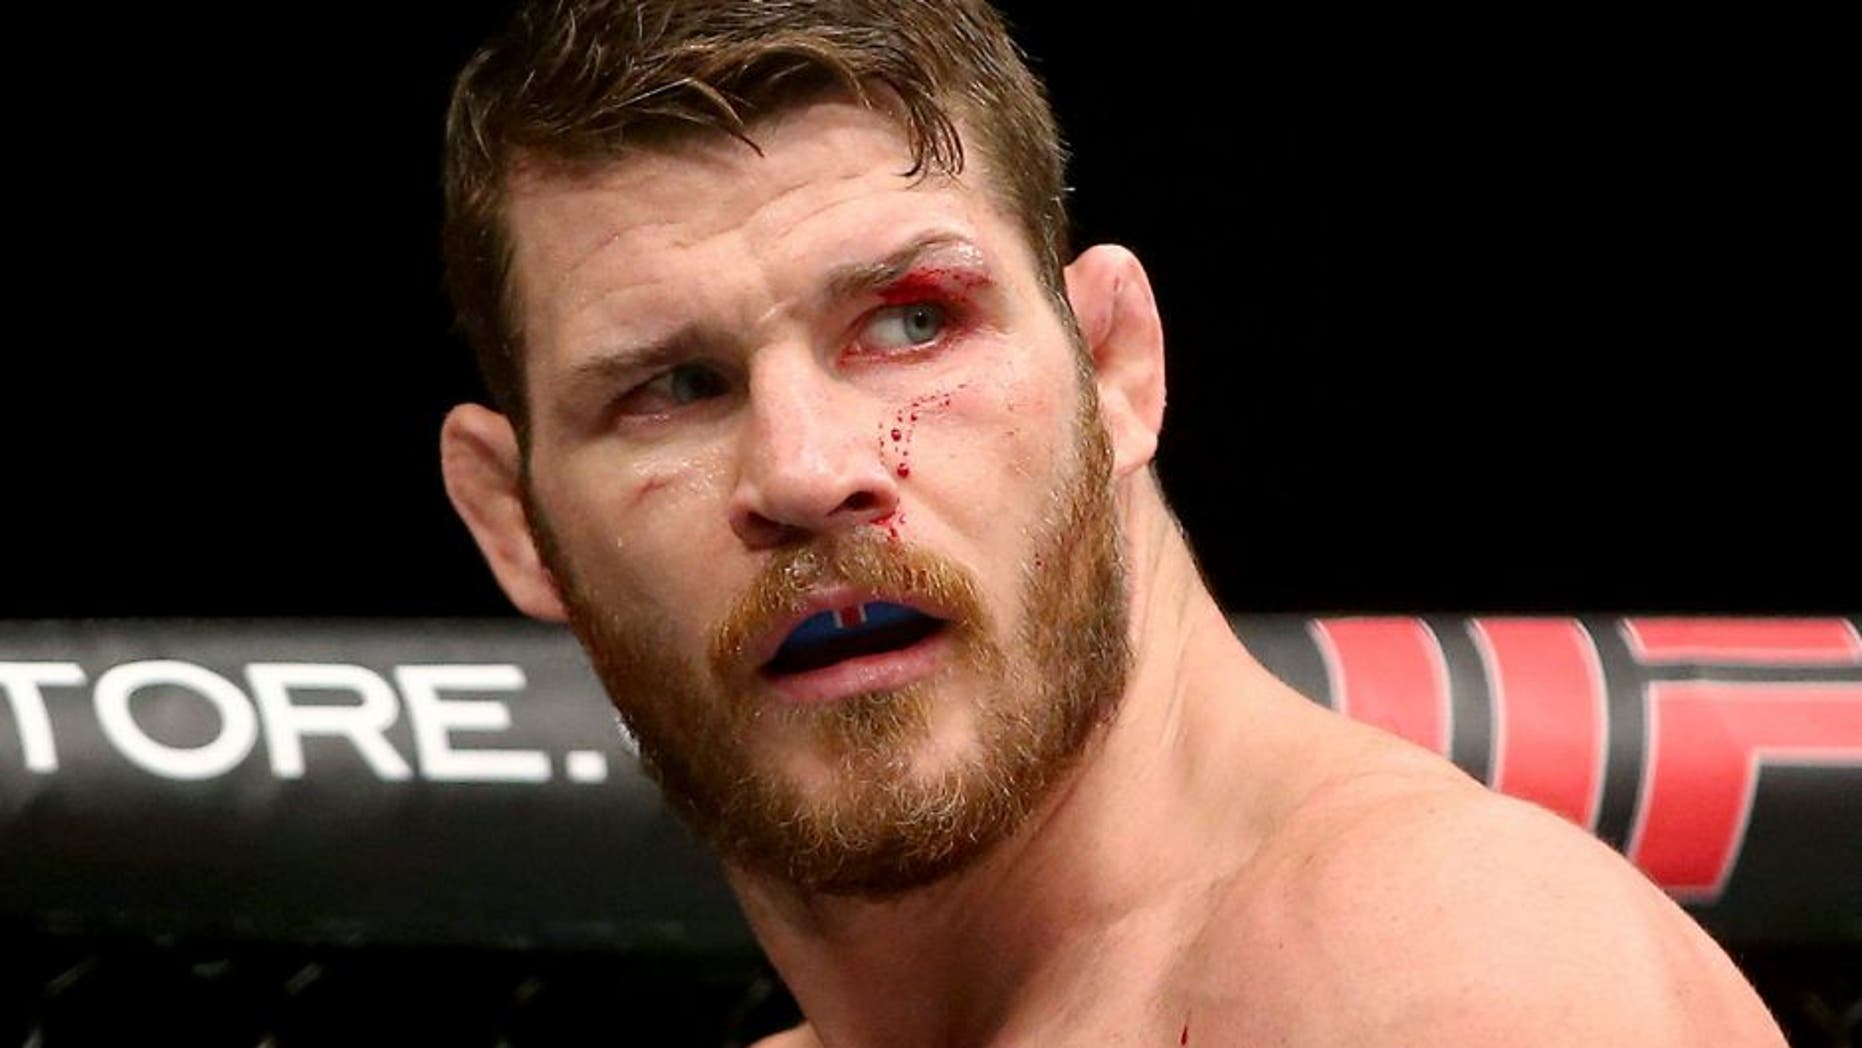 SYDNEY, AUSTRALIA - NOVEMBER 08: Michael Bisping of England is seen with a cut over his left eye in his loss to Luke Rockhold in their middleweight fight during the UFC Fight Night 55 event at Allphones Arena on November 8, 2014 in Sydney, Australia. (Photo by Mark Kolbe/Getty Images)